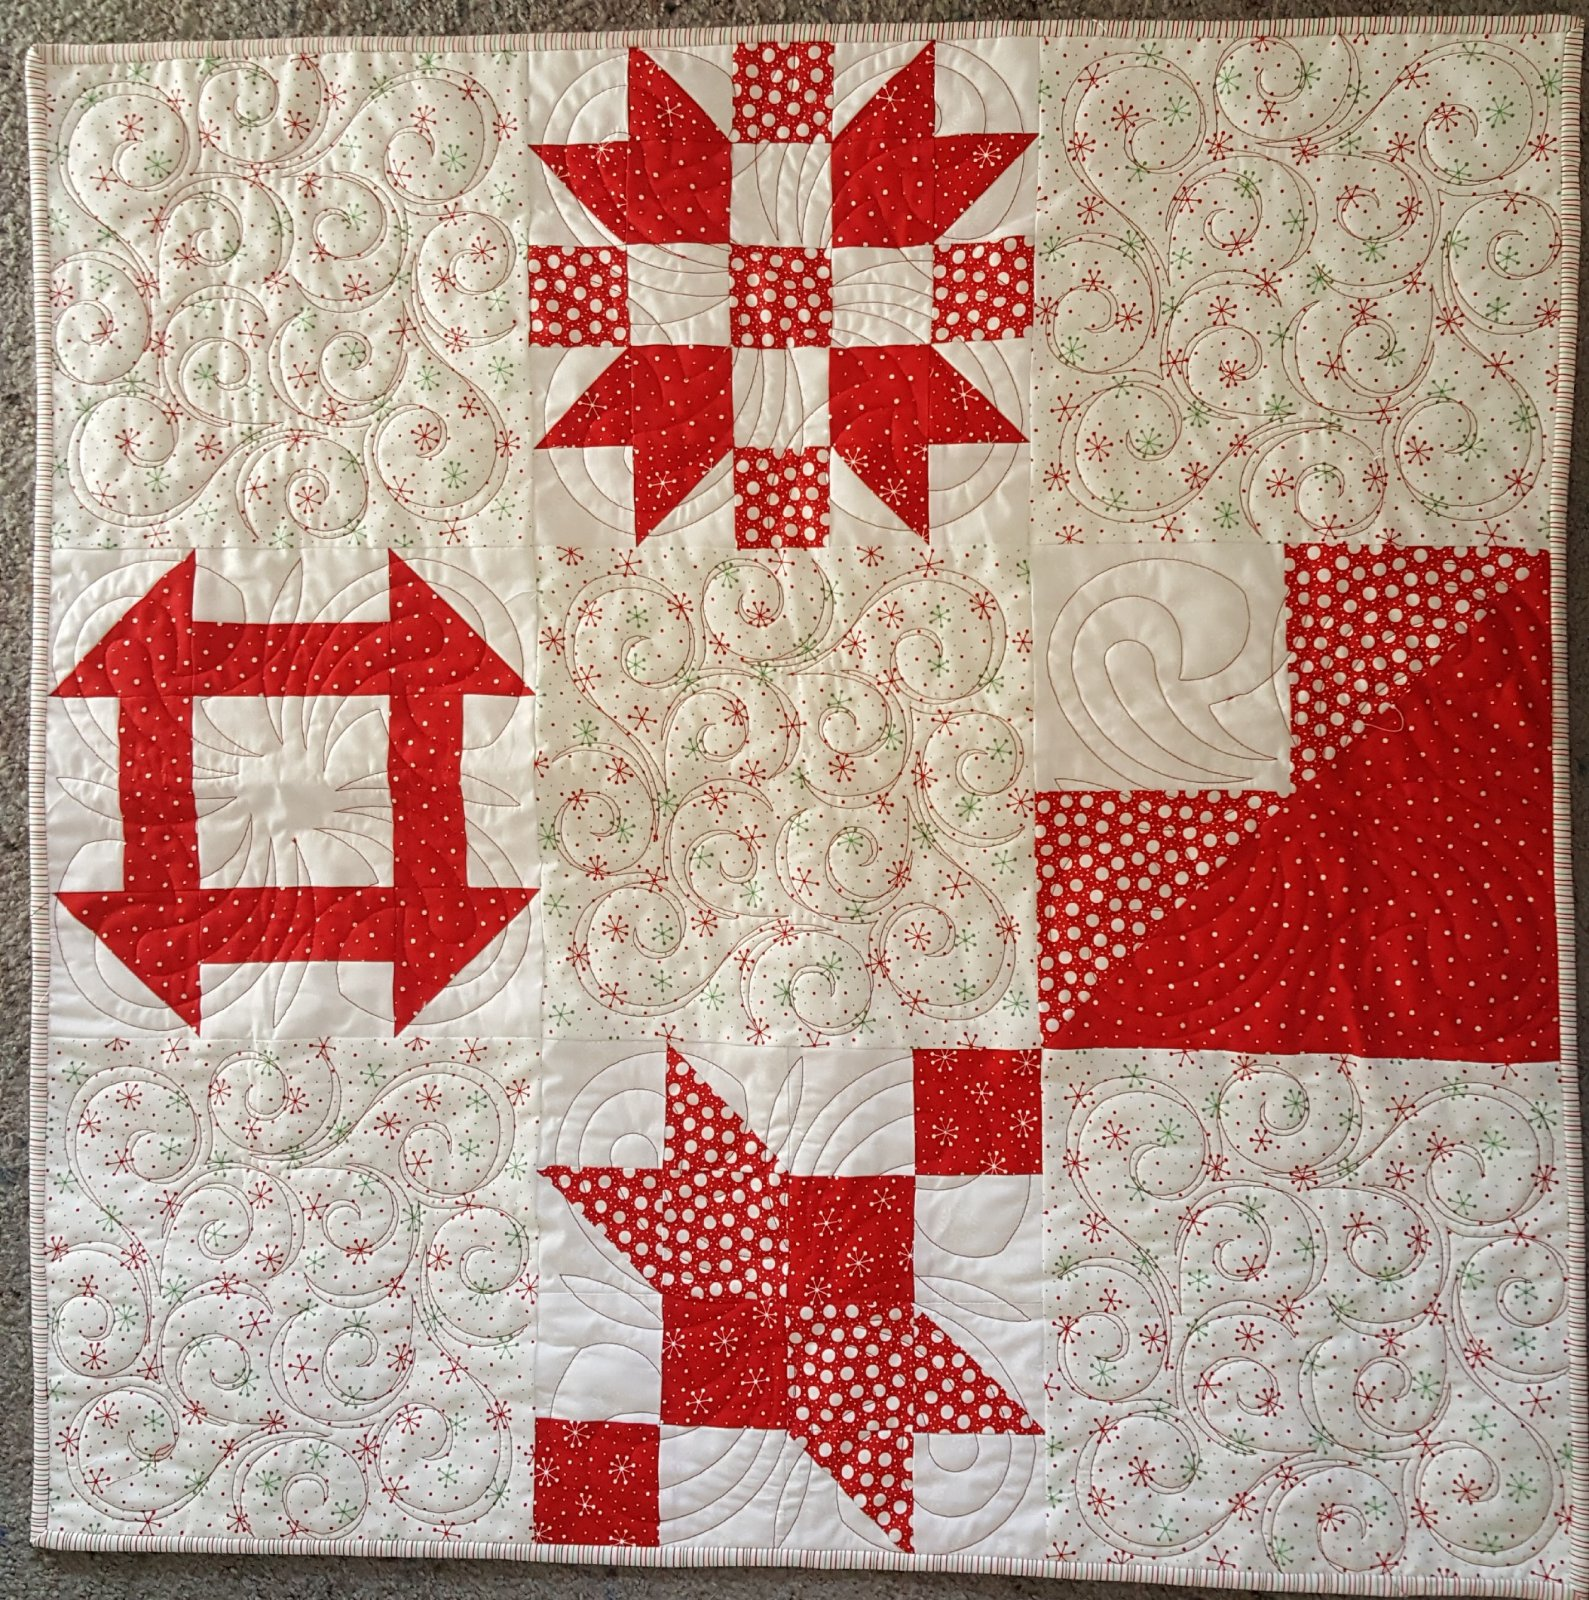 Frosty's Gone Quilting Shop Hop : gone quilting - Adamdwight.com